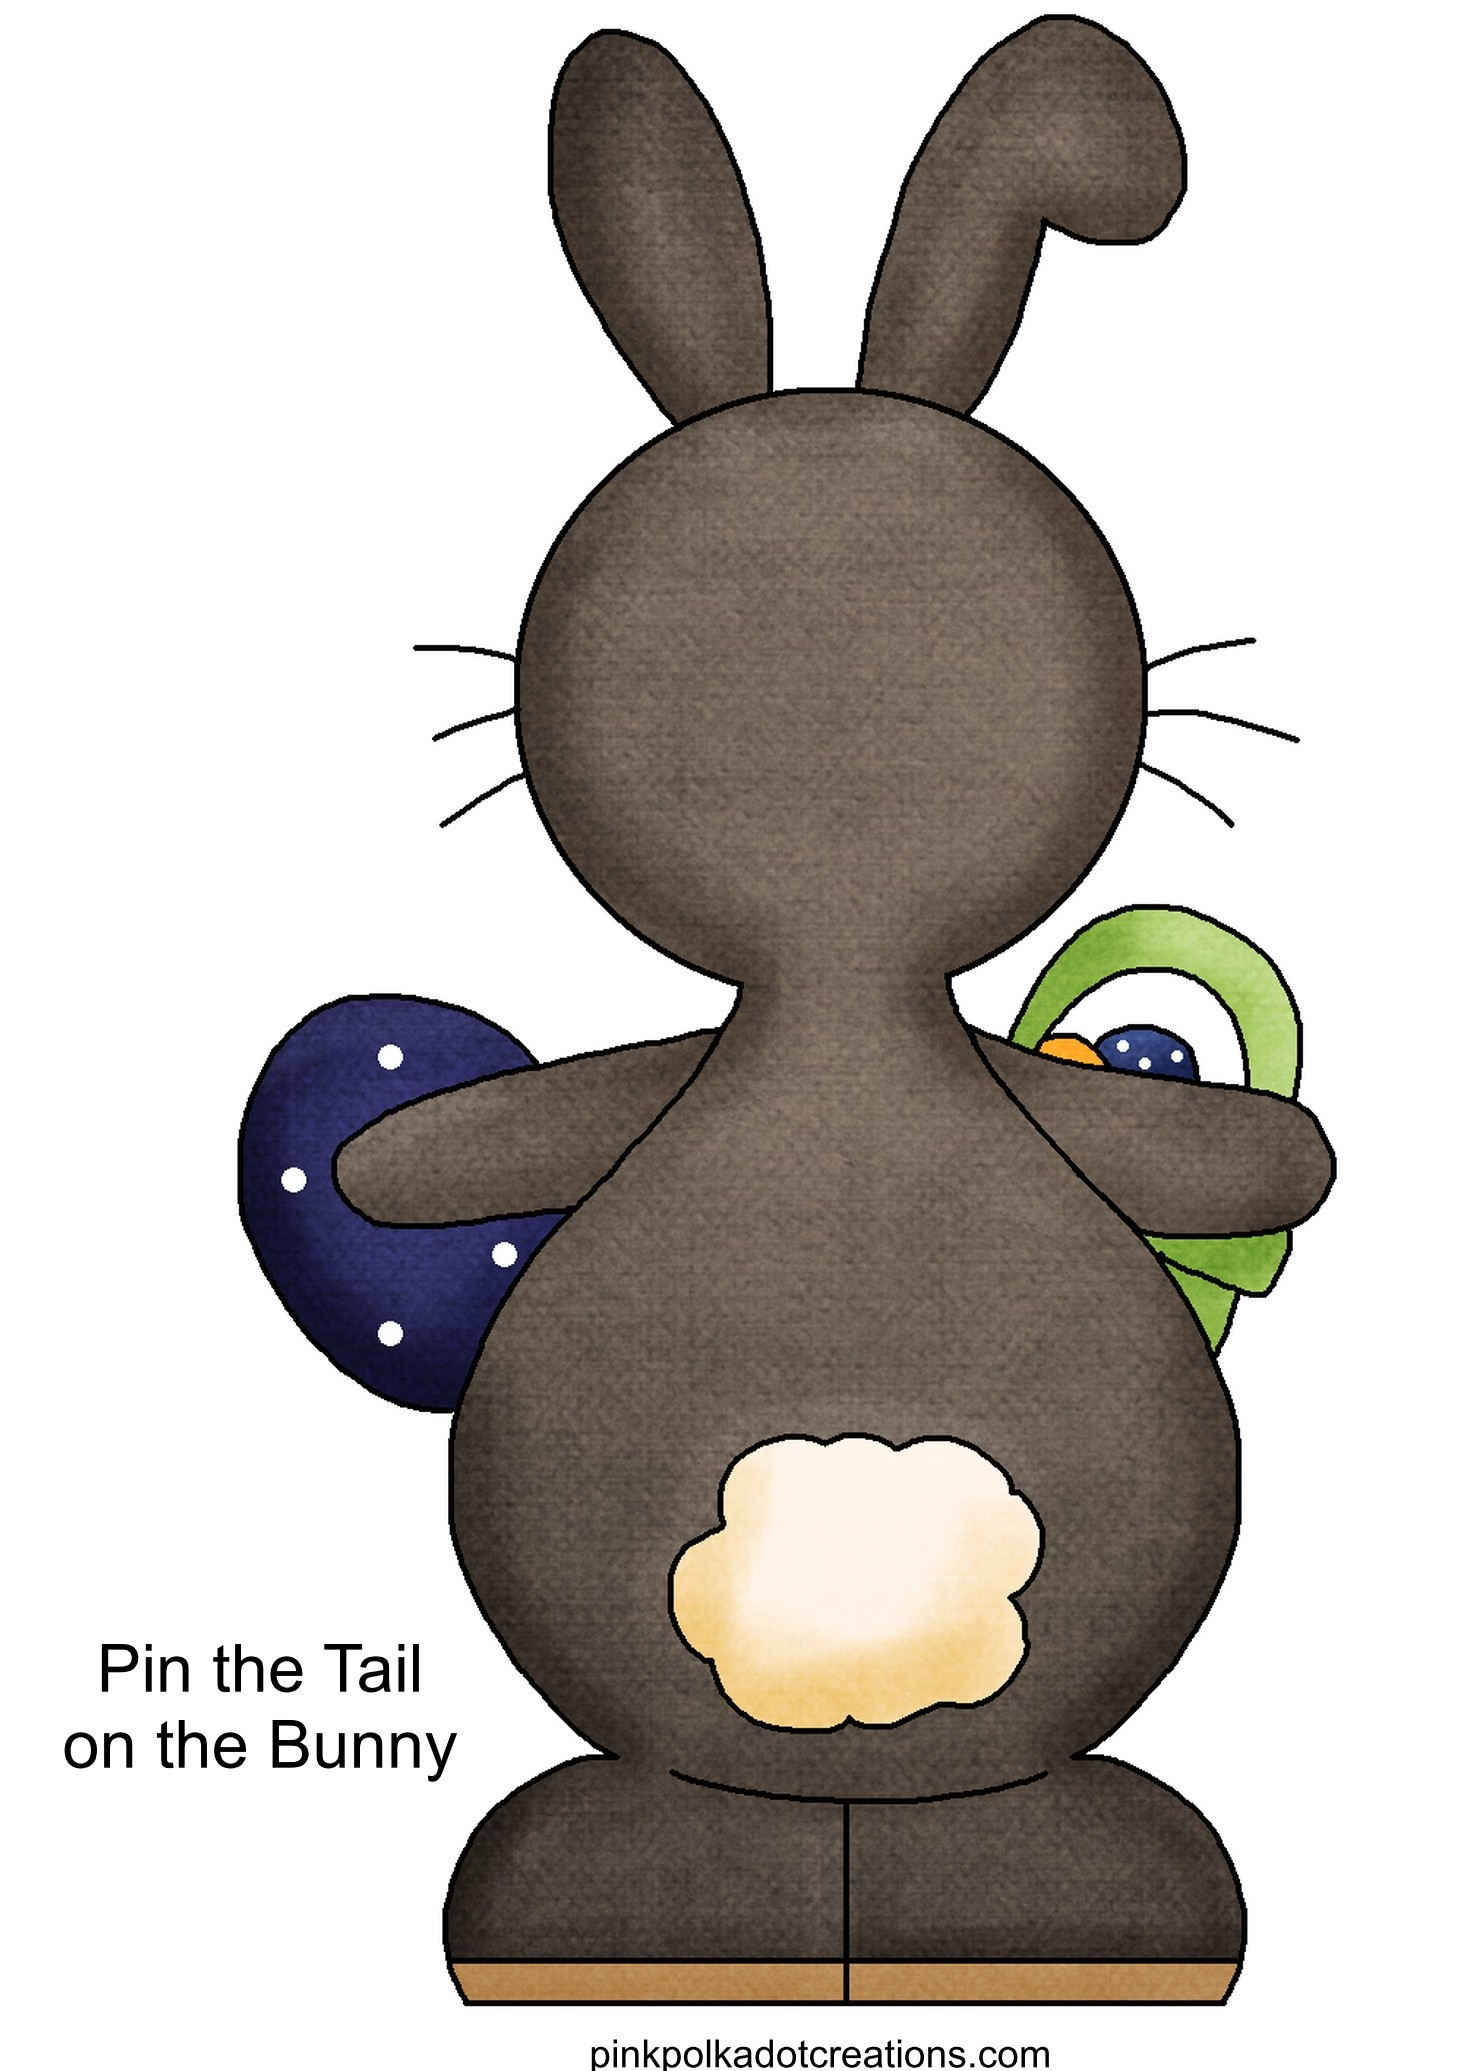 Free Printable Pin the Tail On the Bunny